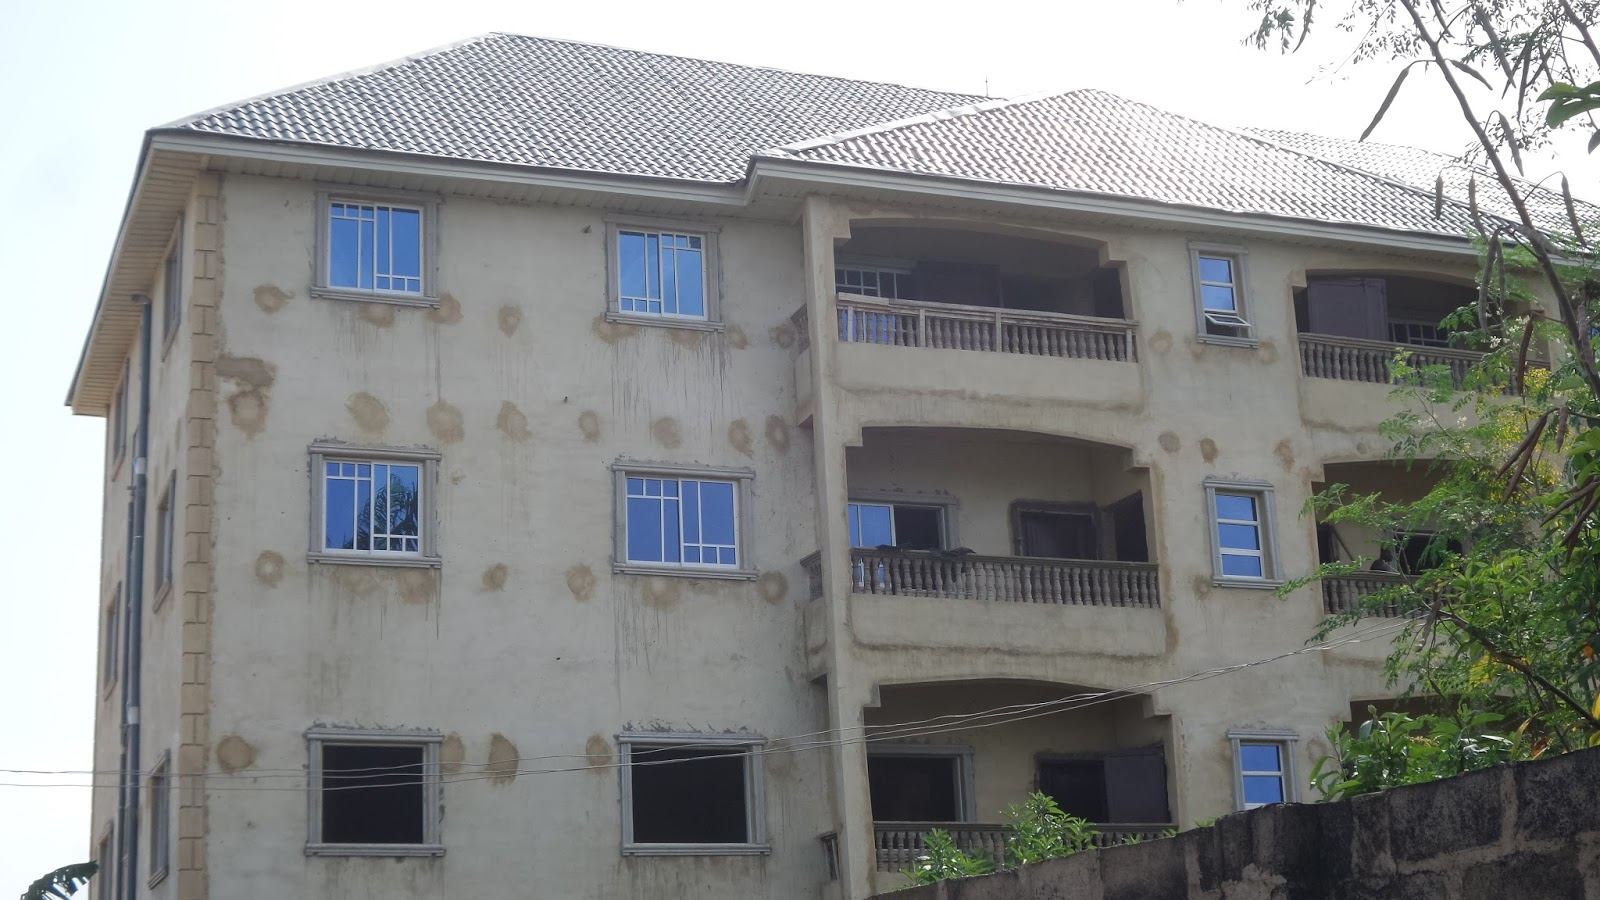 Pictures from our 8 flats house finish works in enugu